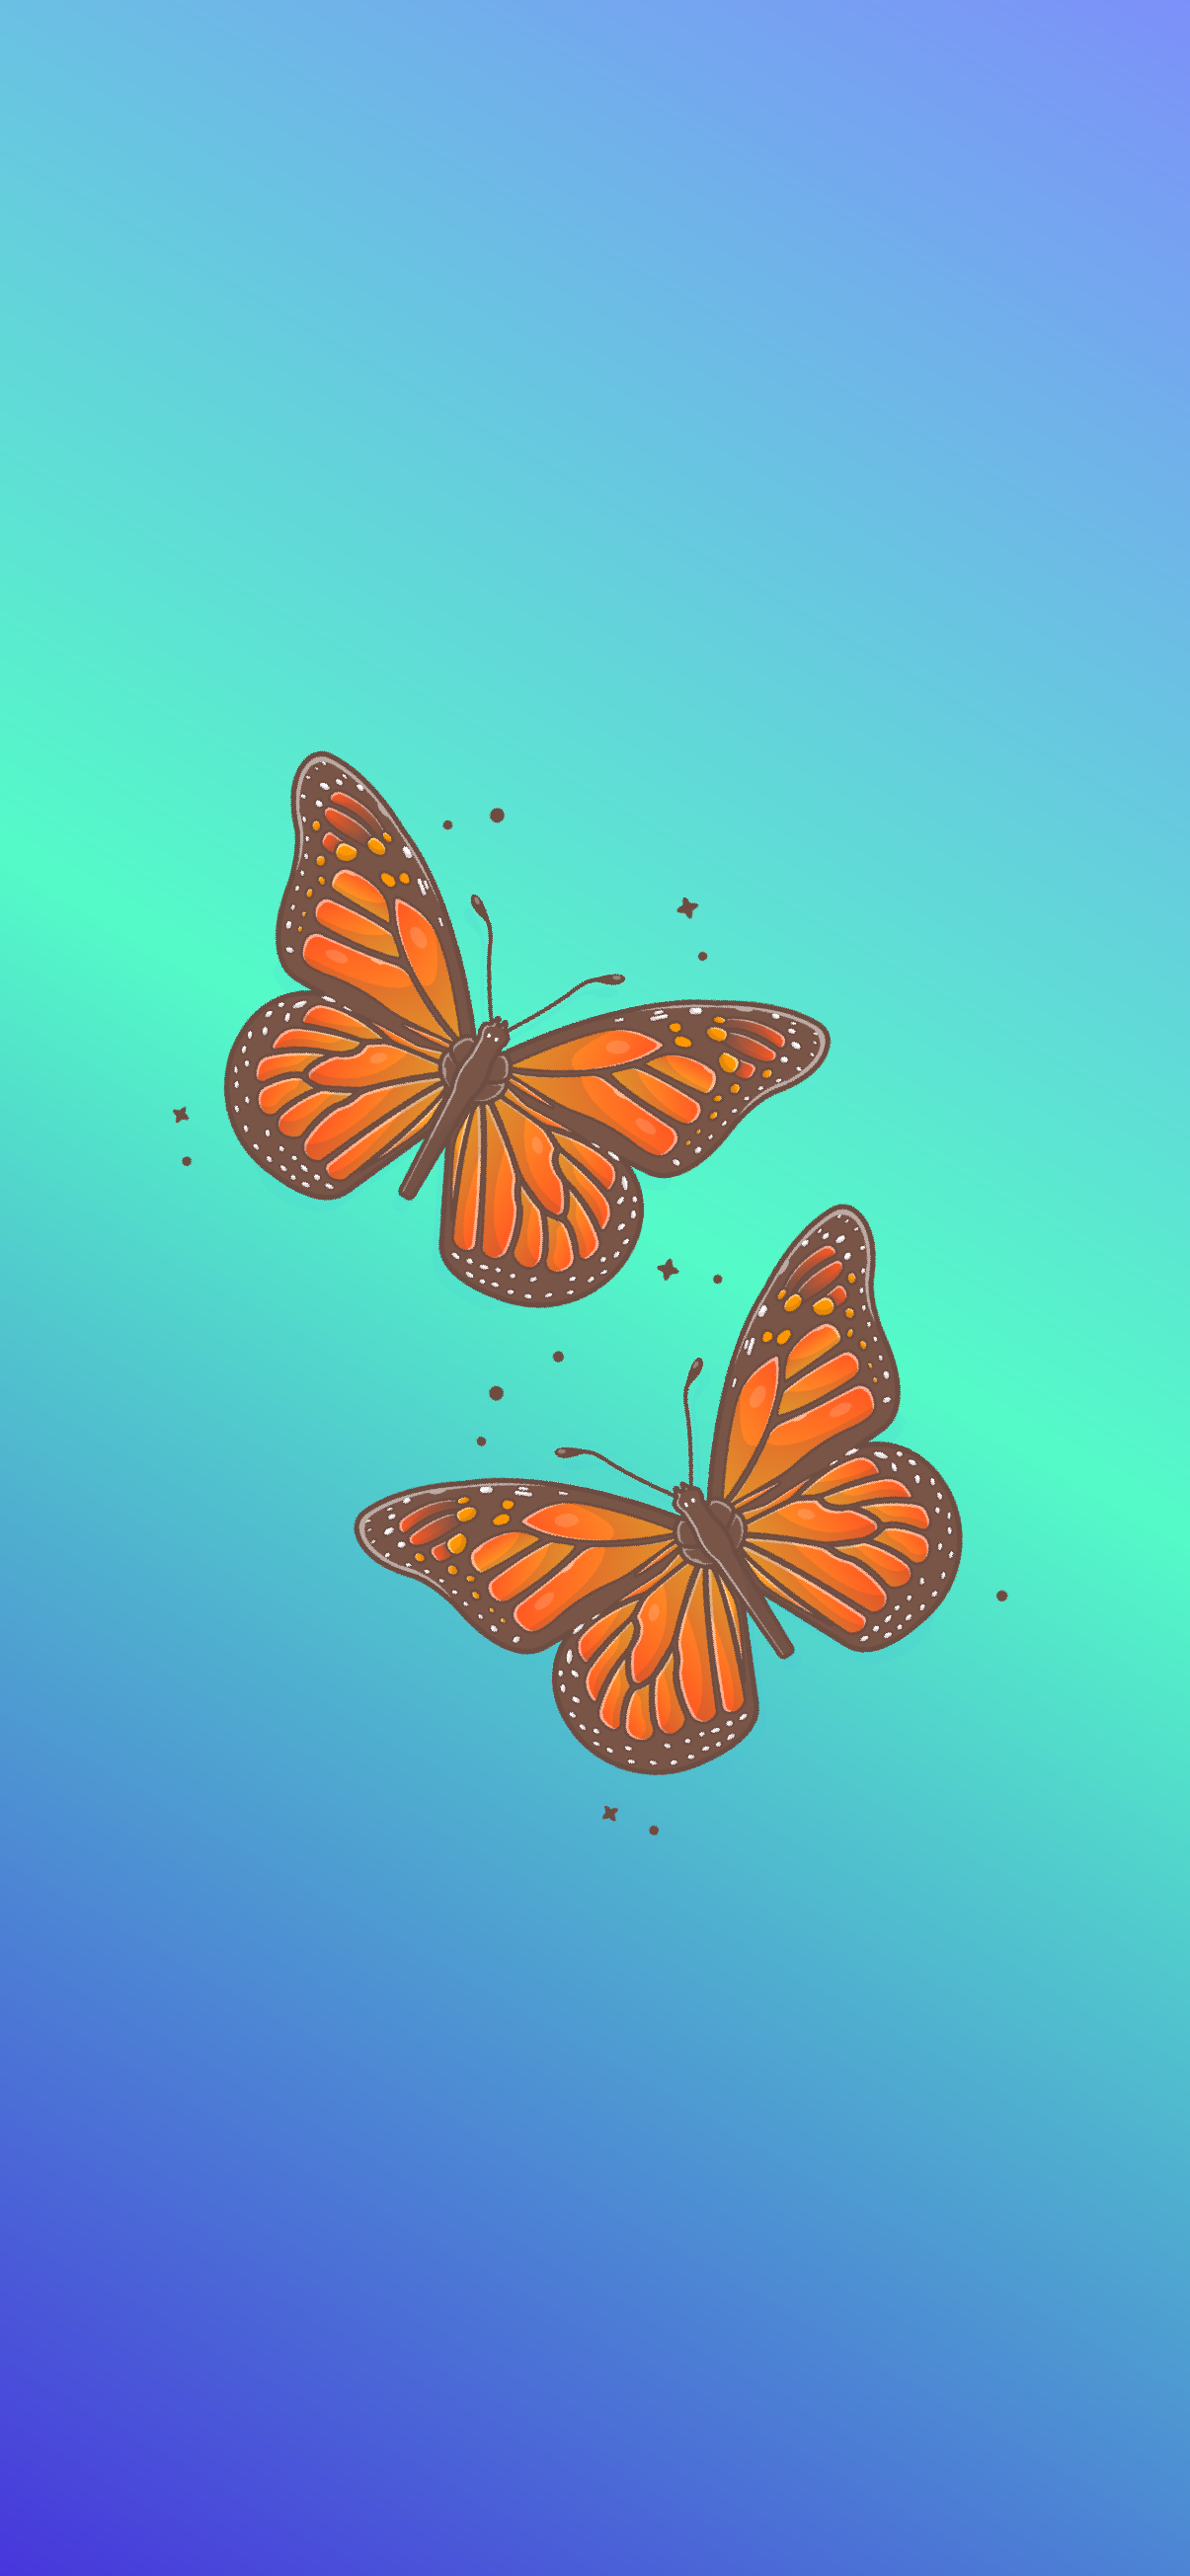 Butterfly iphone wallpapers | WallpaperiZe - Phone Wallpapers